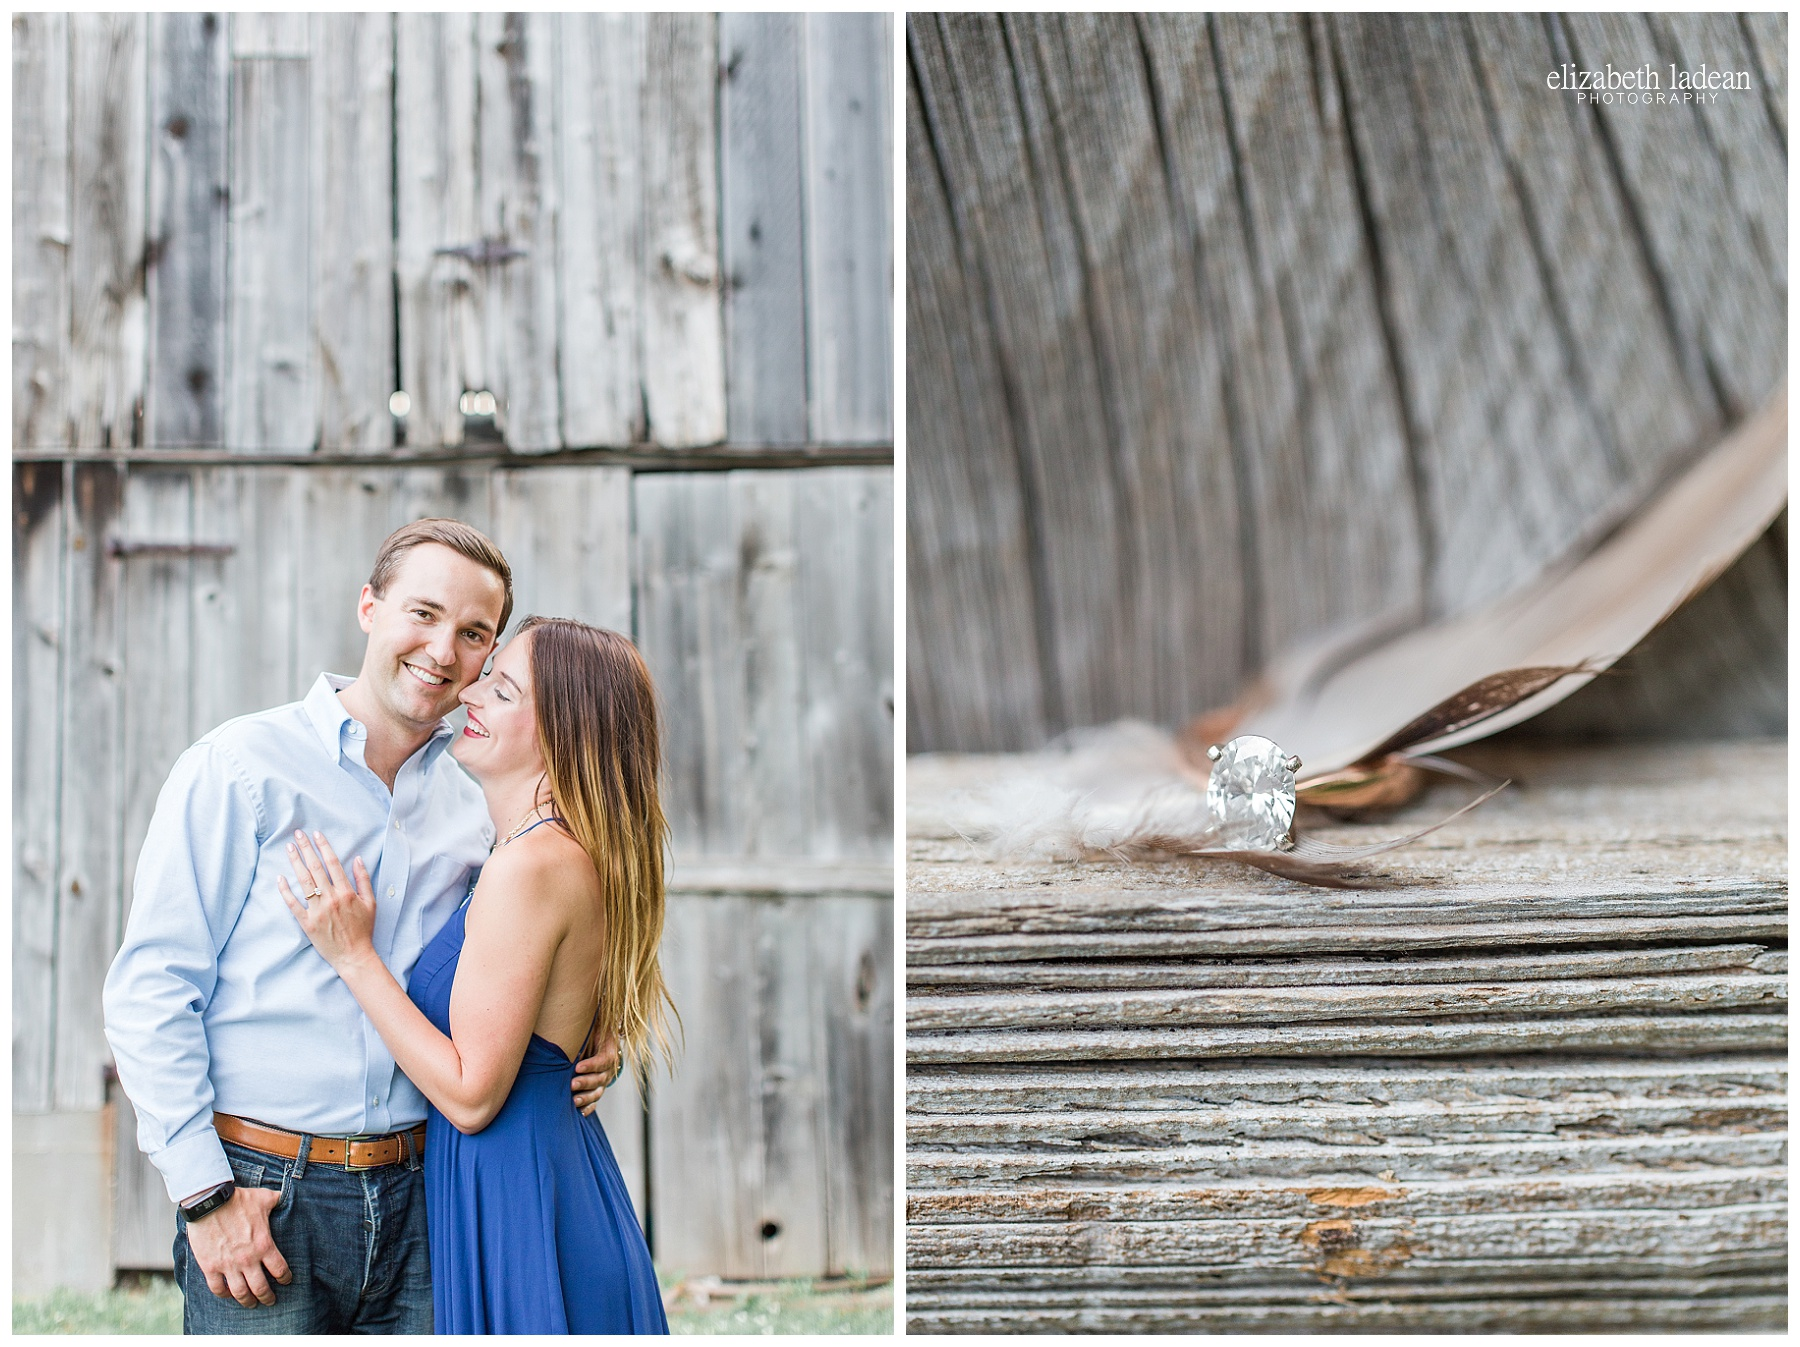 Weston-Bend-Kansas-City-Engagement-Photographer-C+A2017-Elizabeth-Ladean-Photography-photo_1174.jpg